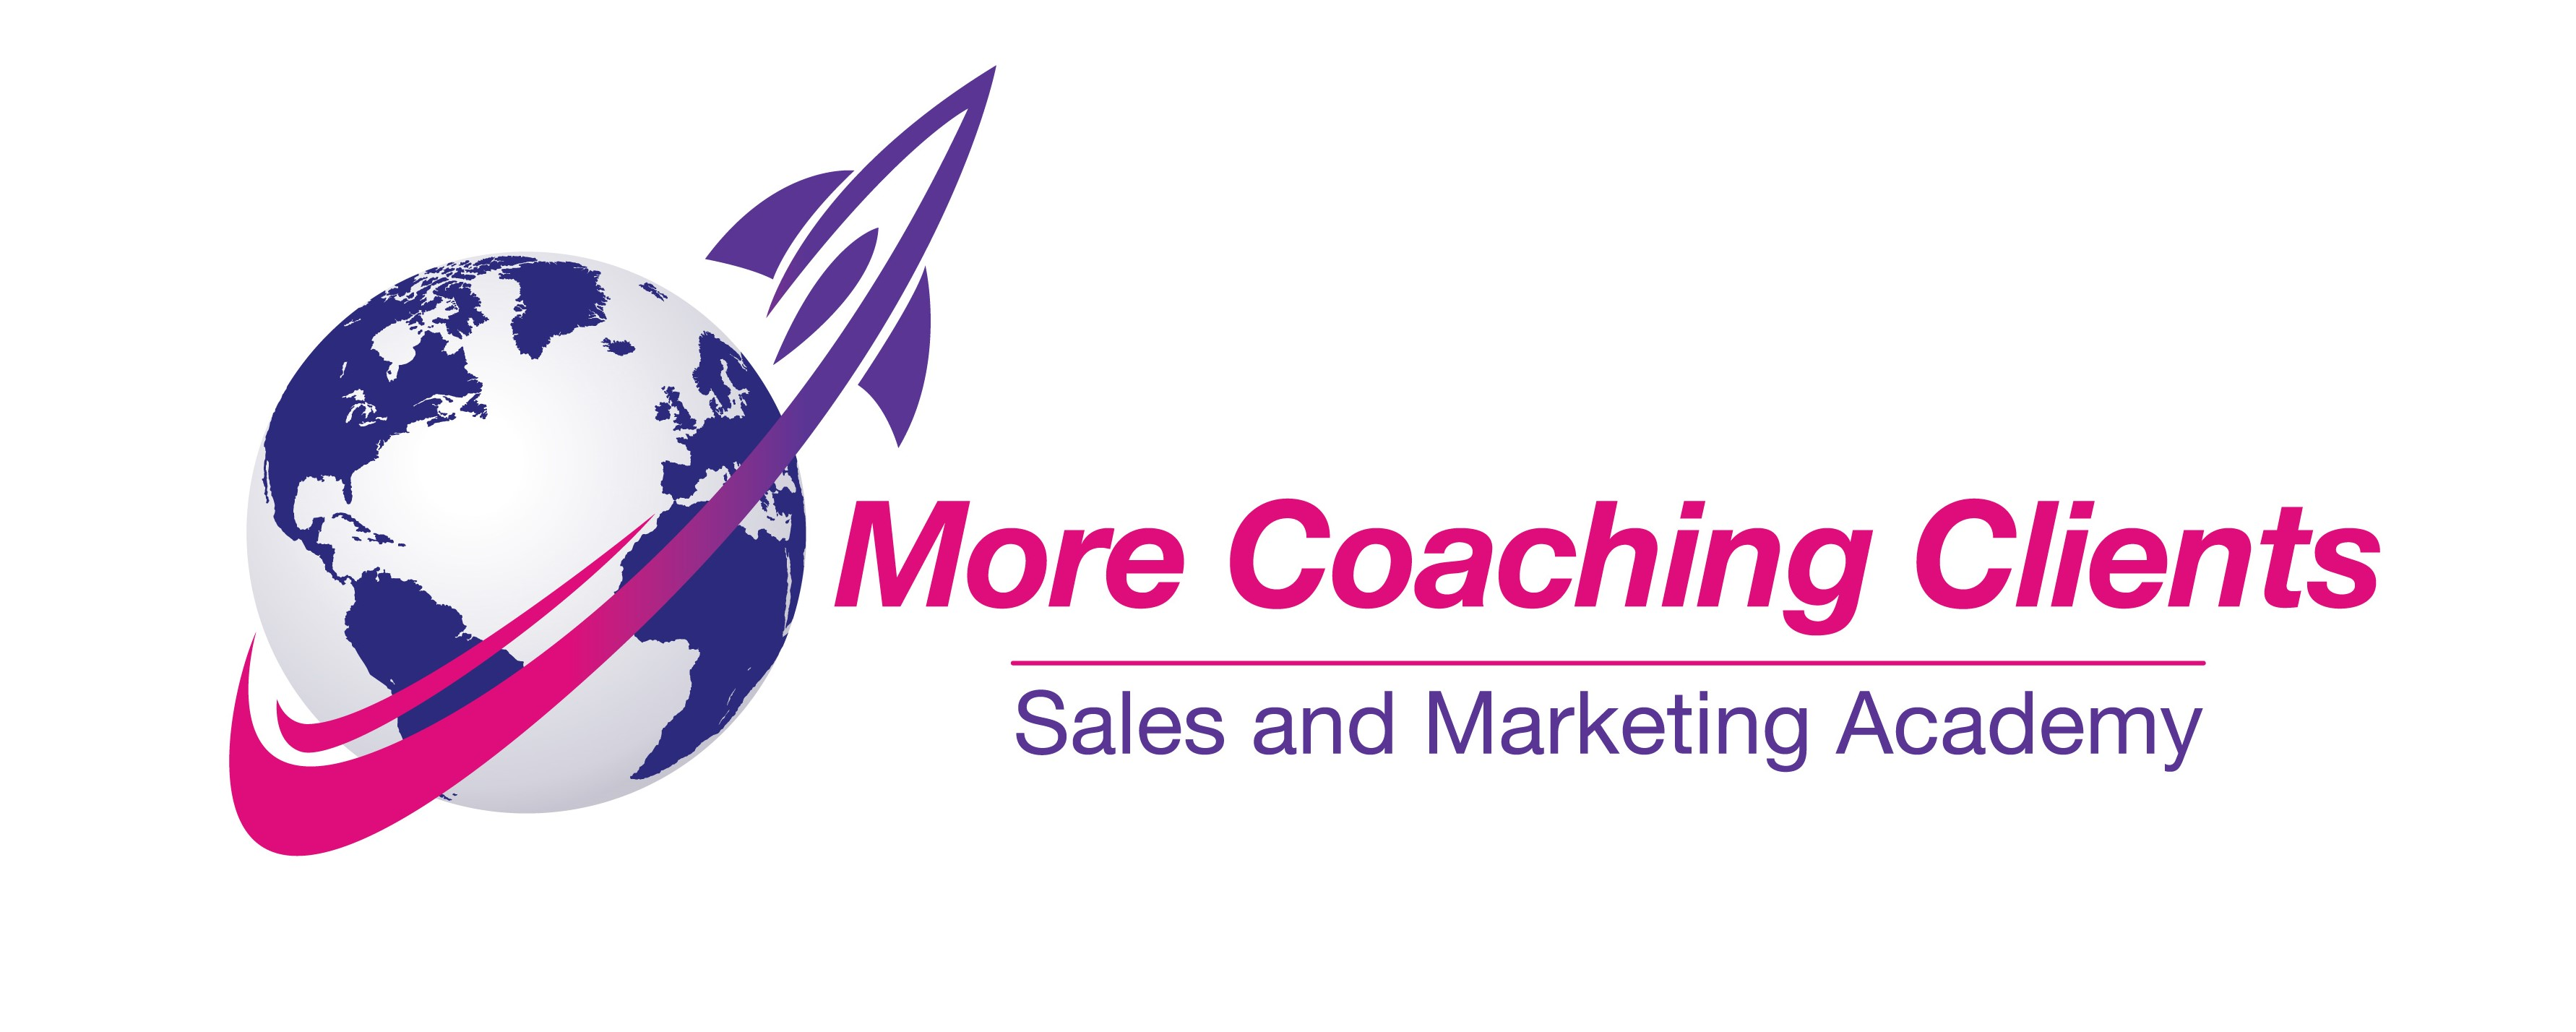 More Coaching Clients Sales and Marketing Academy